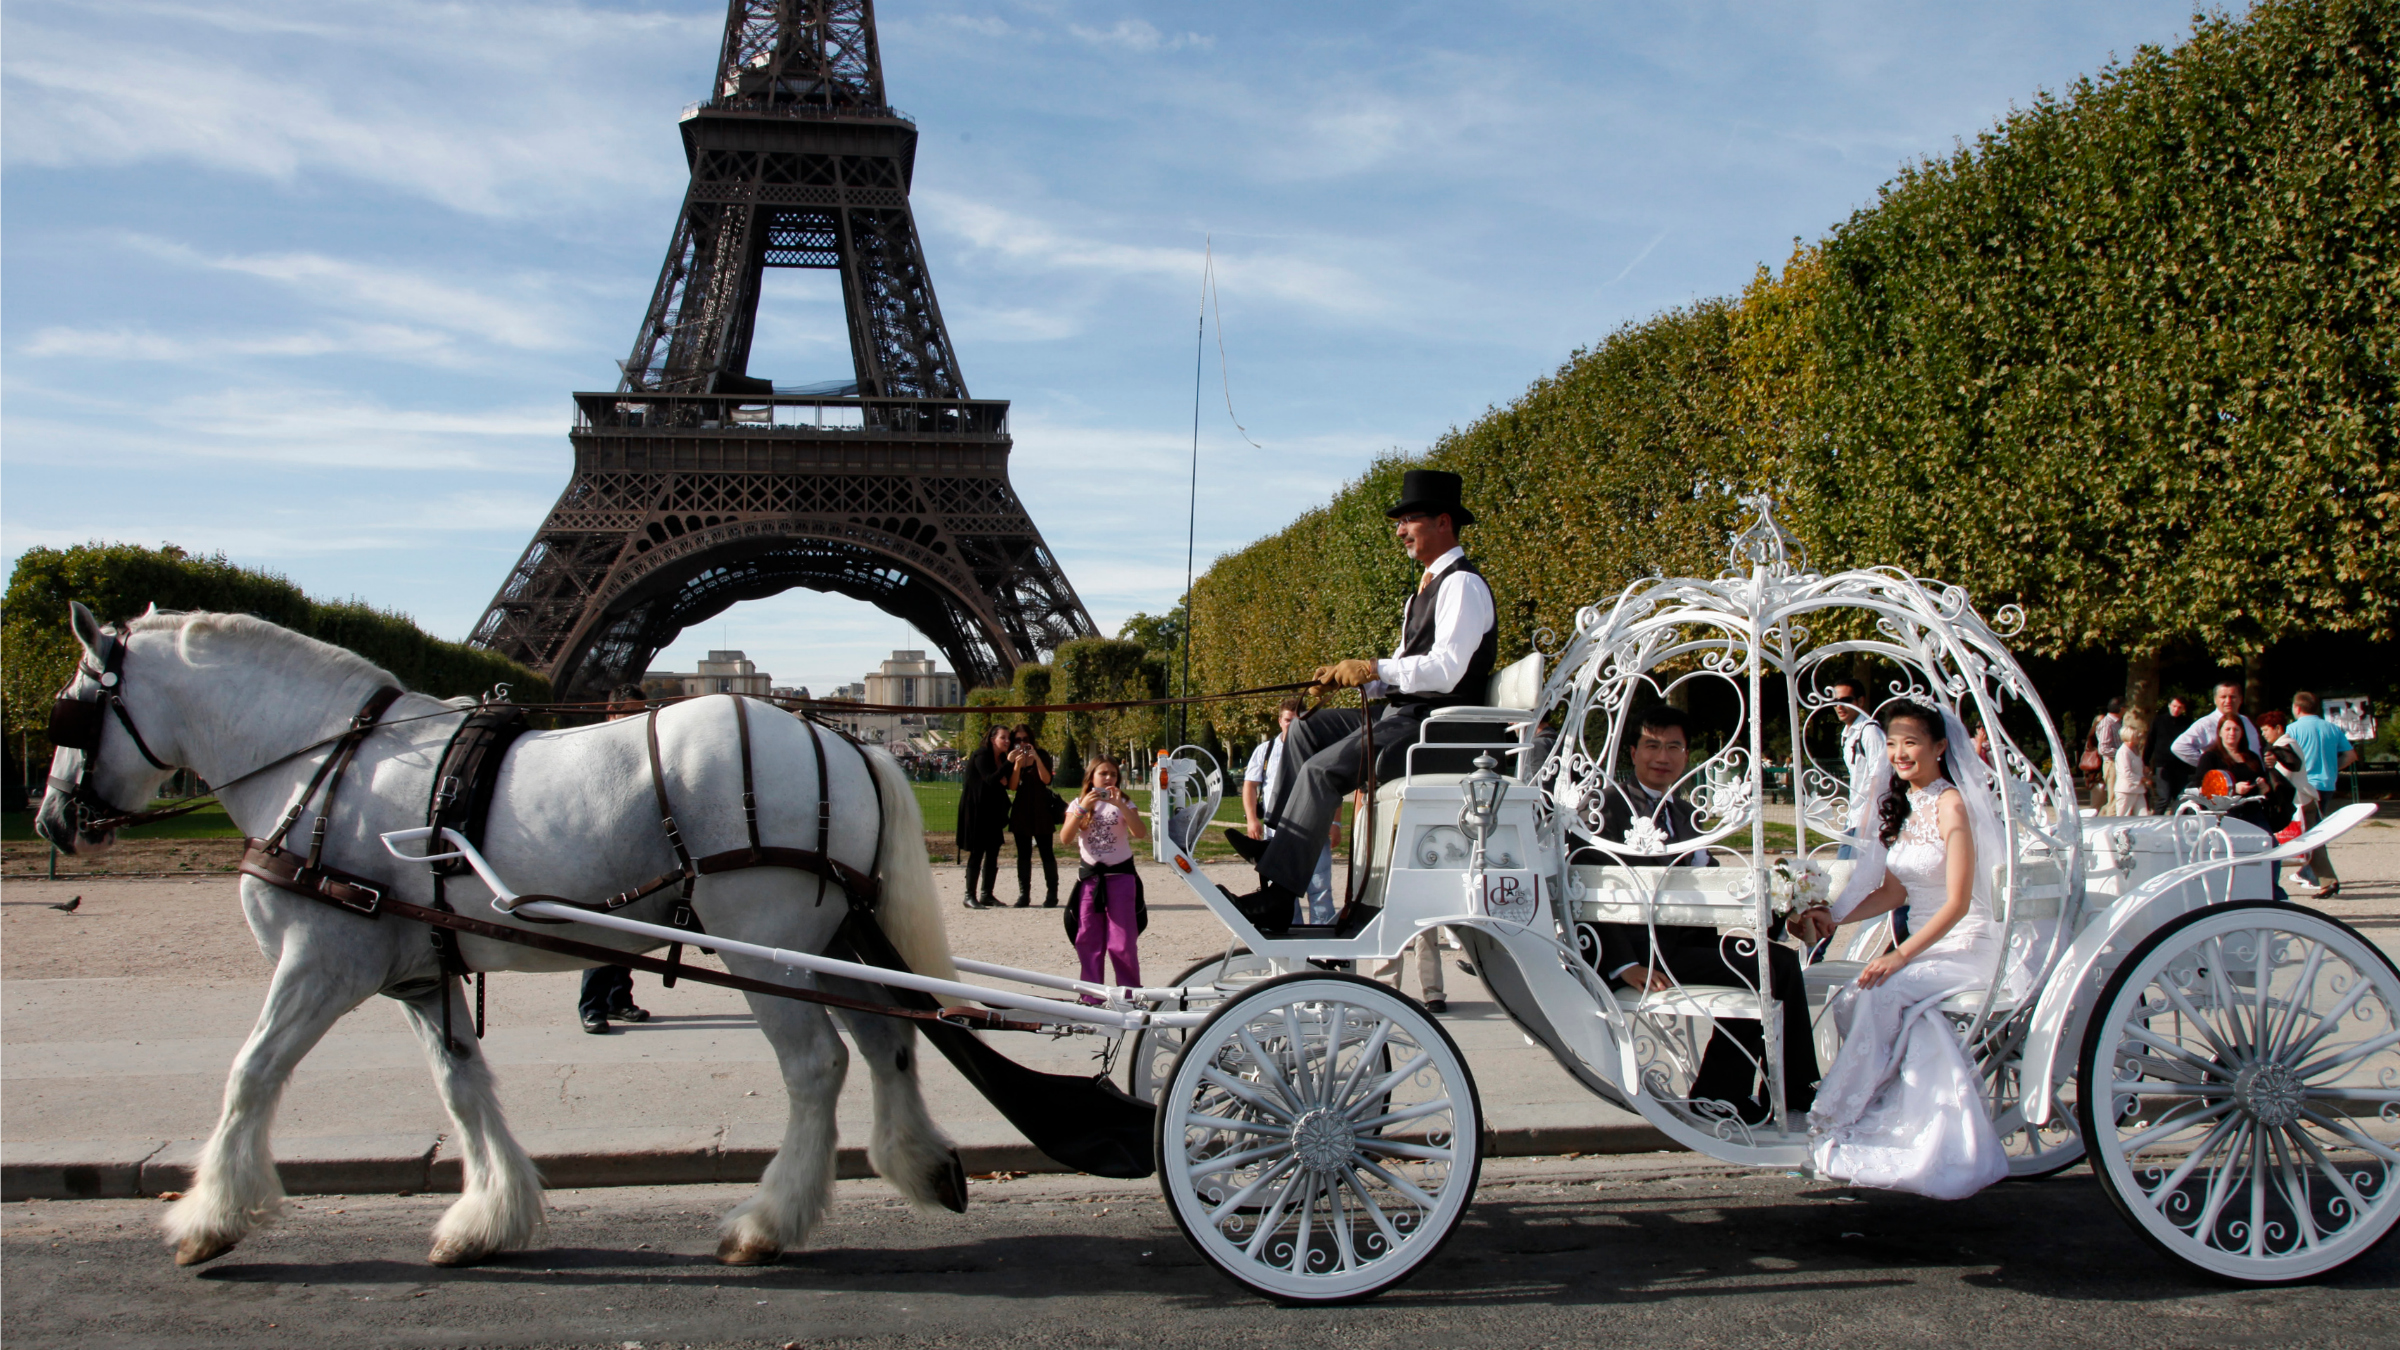 Newly-weds Doctor Kenneth Ma and Jacqueline pose in a Cinderella carriage in front the Eiffel Tower in Paris.